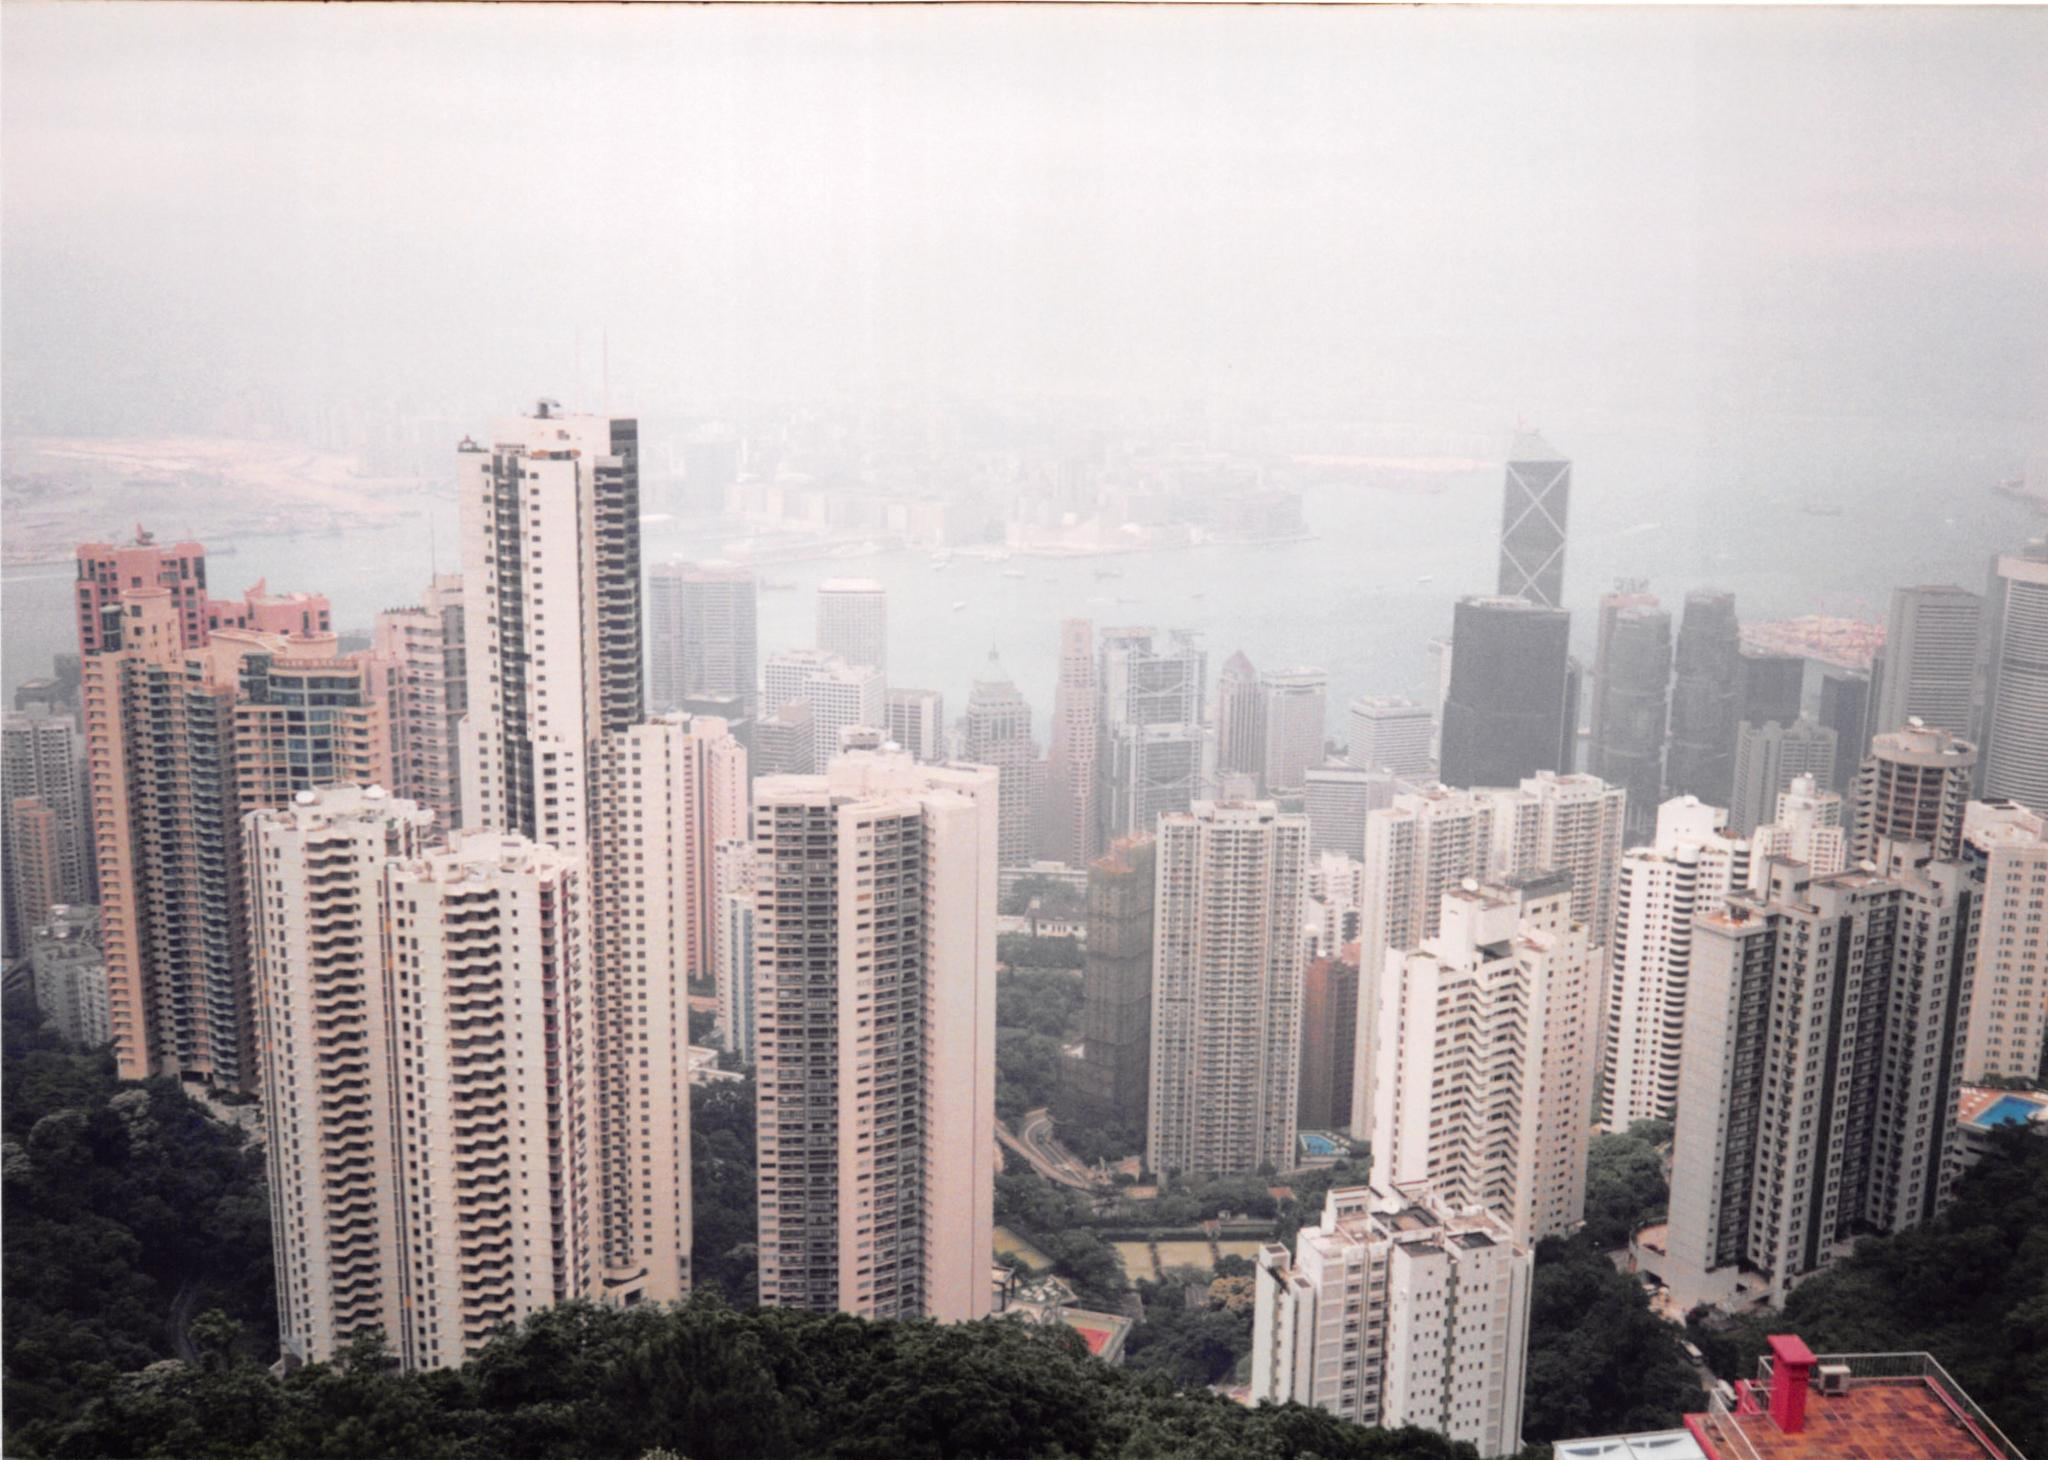 Hong Kong Skyline by John Schneyer